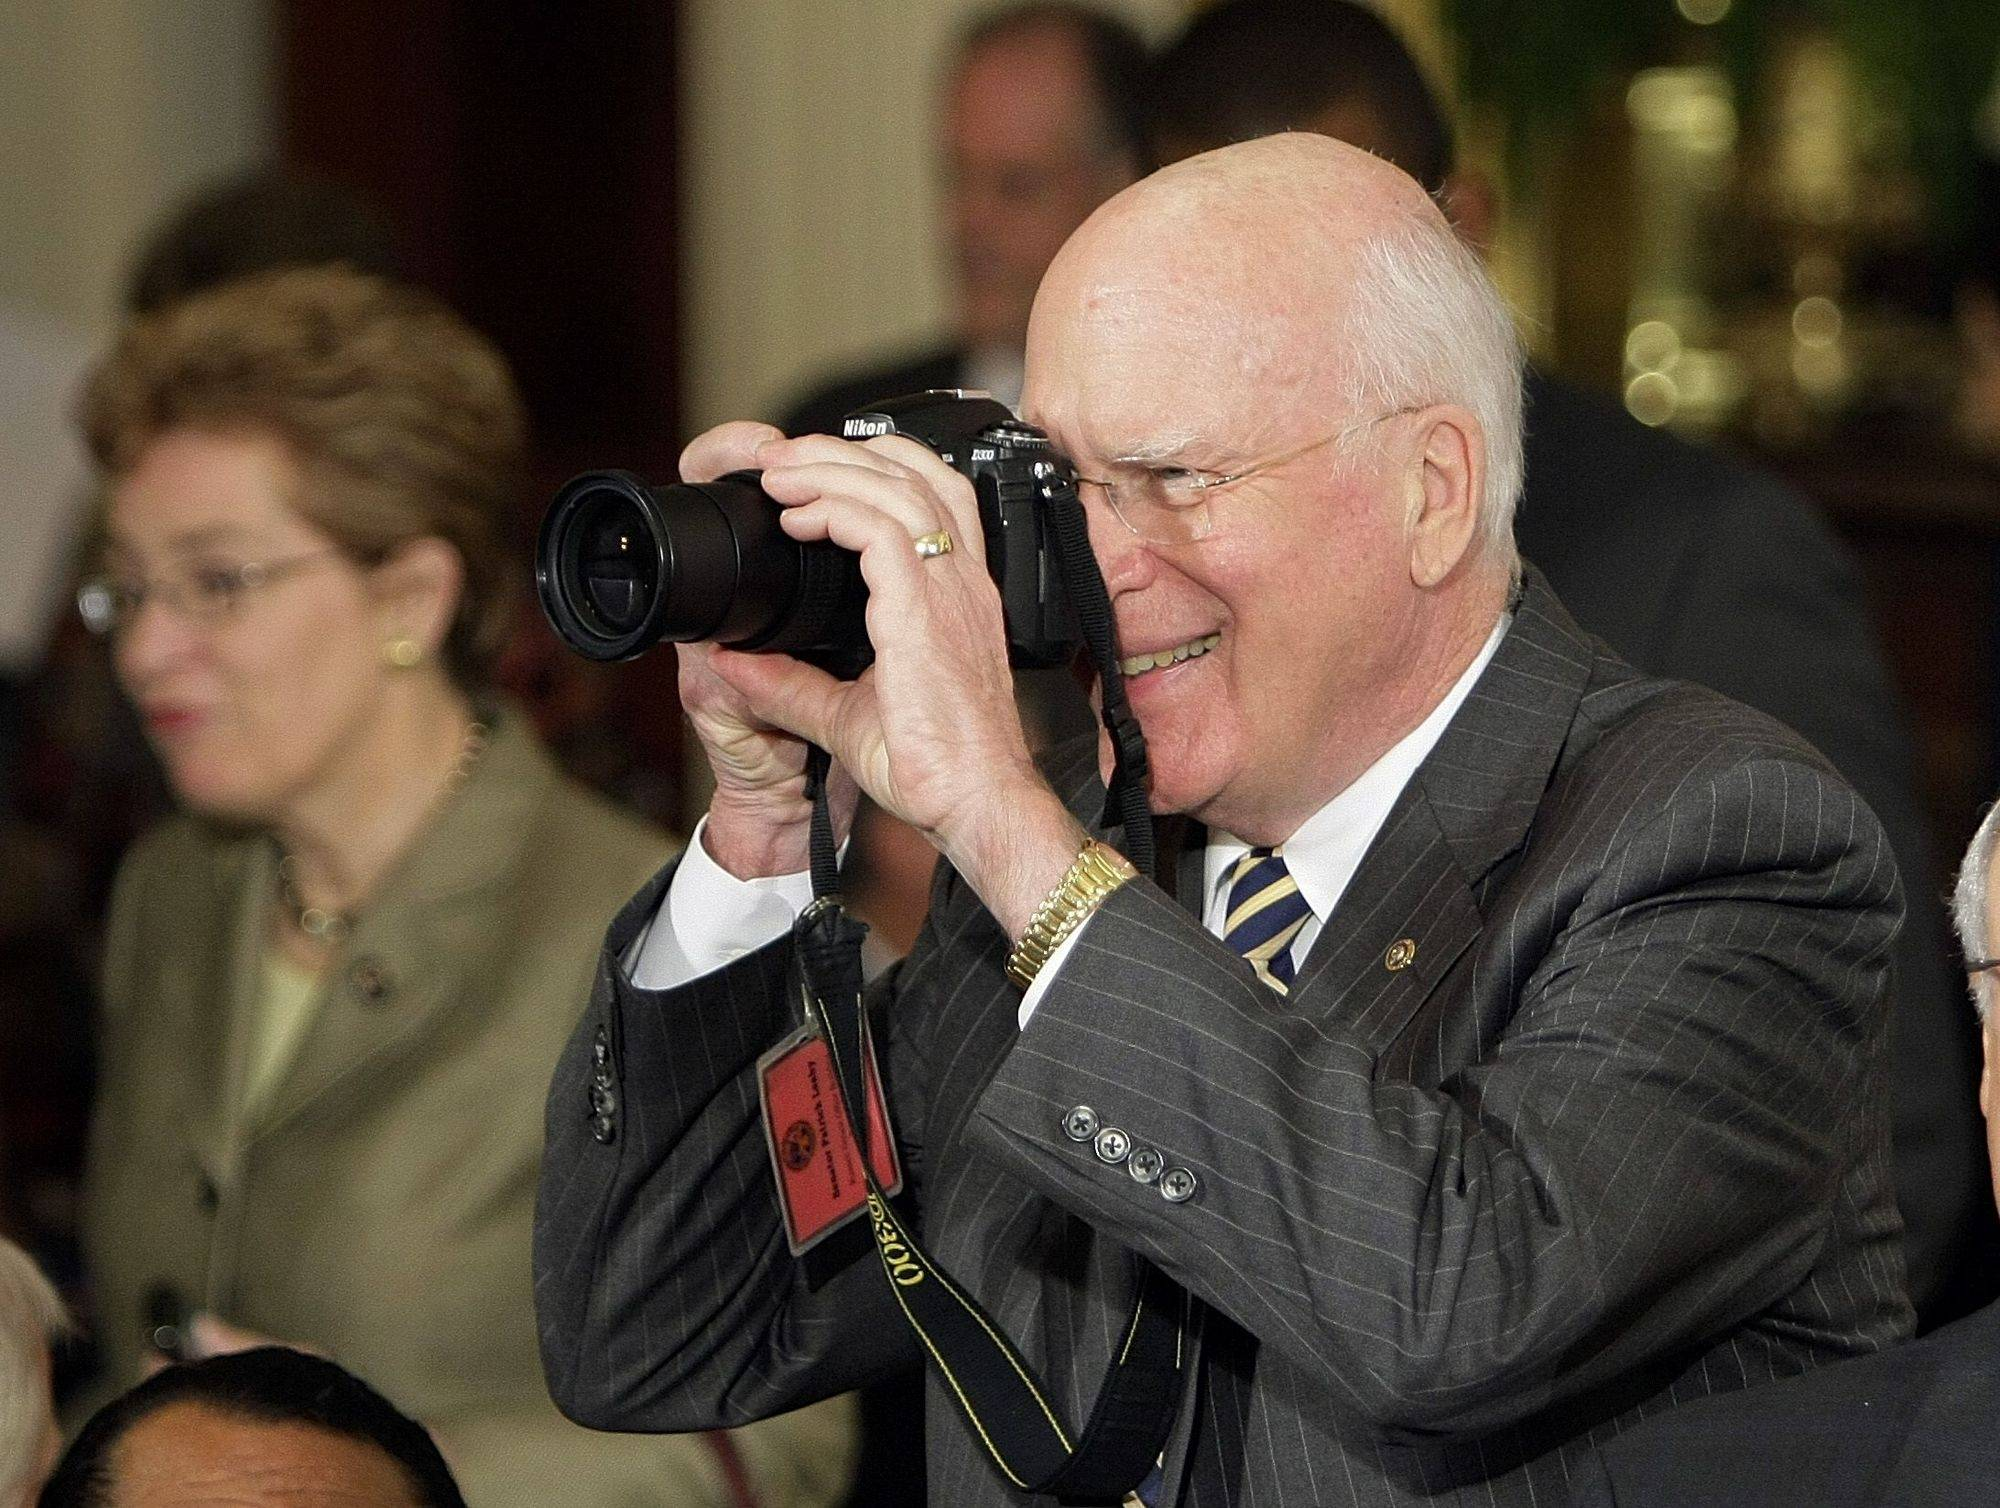 Sen. Patrick Leahy, D-Vt., photographs the scene and dignitaries as they arrive for the signing of the health care bill.